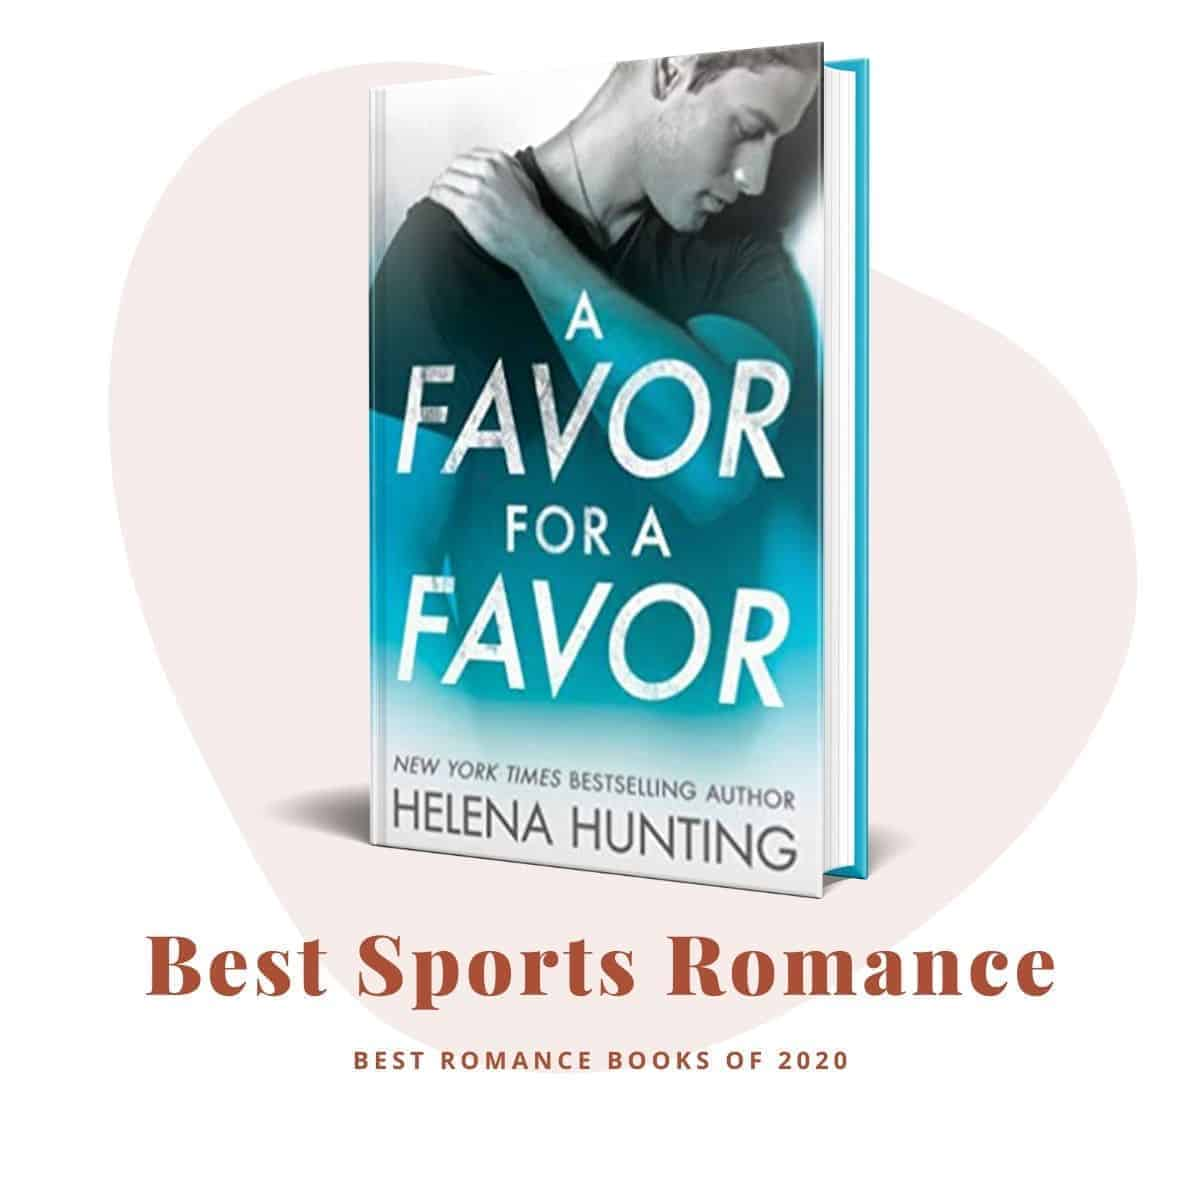 Best Romance Books 2020-A Favor for a Favor by Helena Hunting